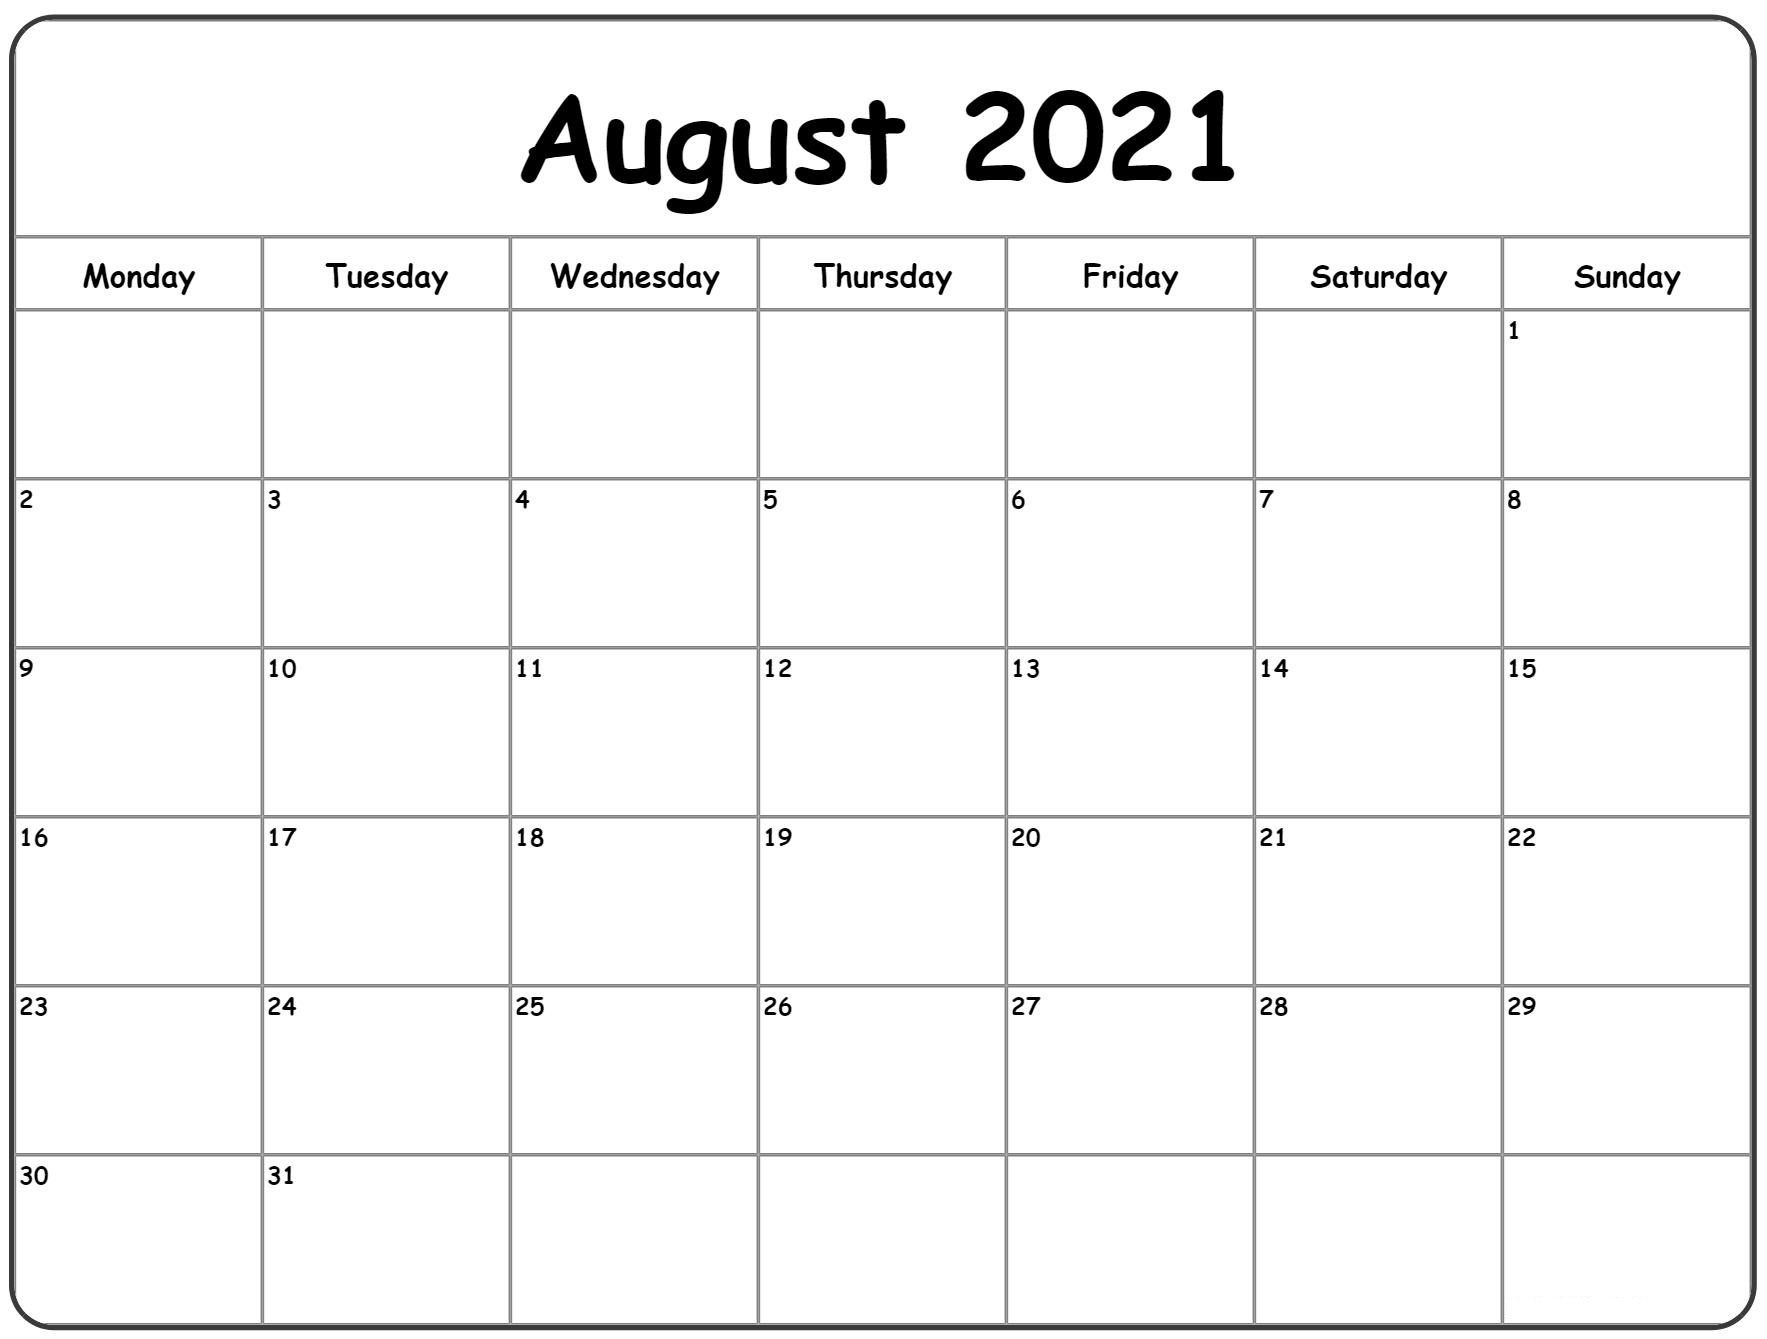 August 2021 Calendar New Excel Word Pdf Template - Printable